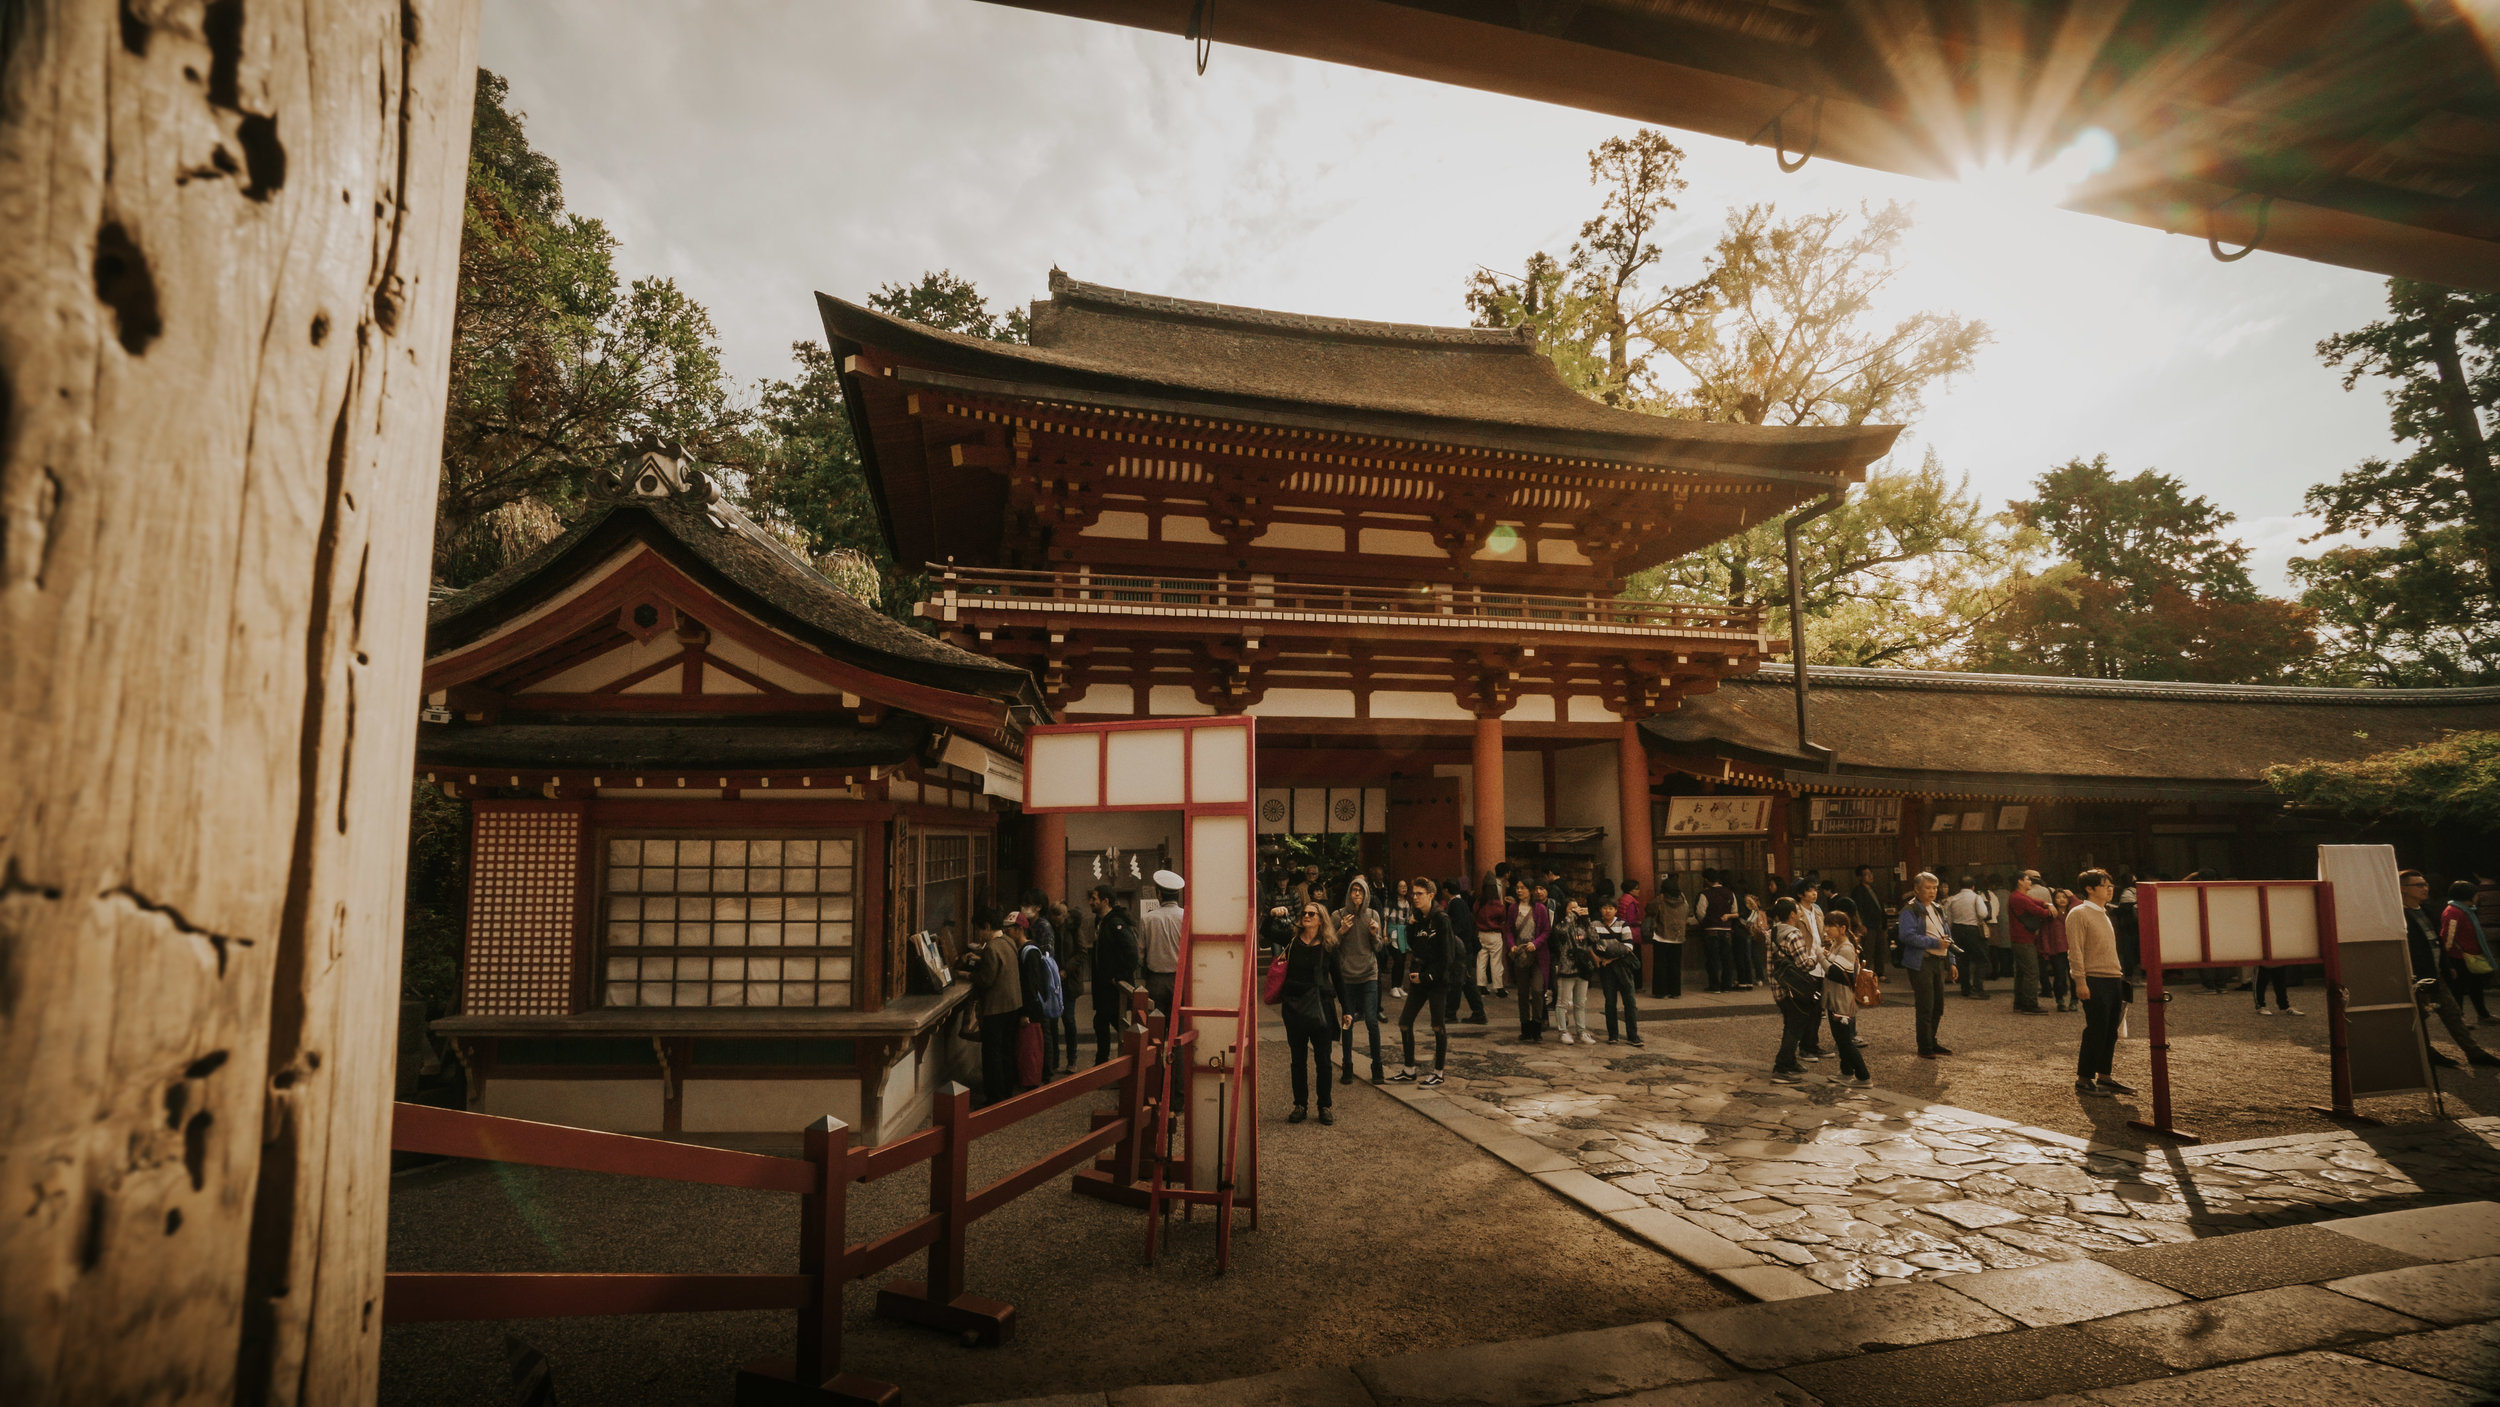 polywander-what-to-see-in-nara-park-shrine